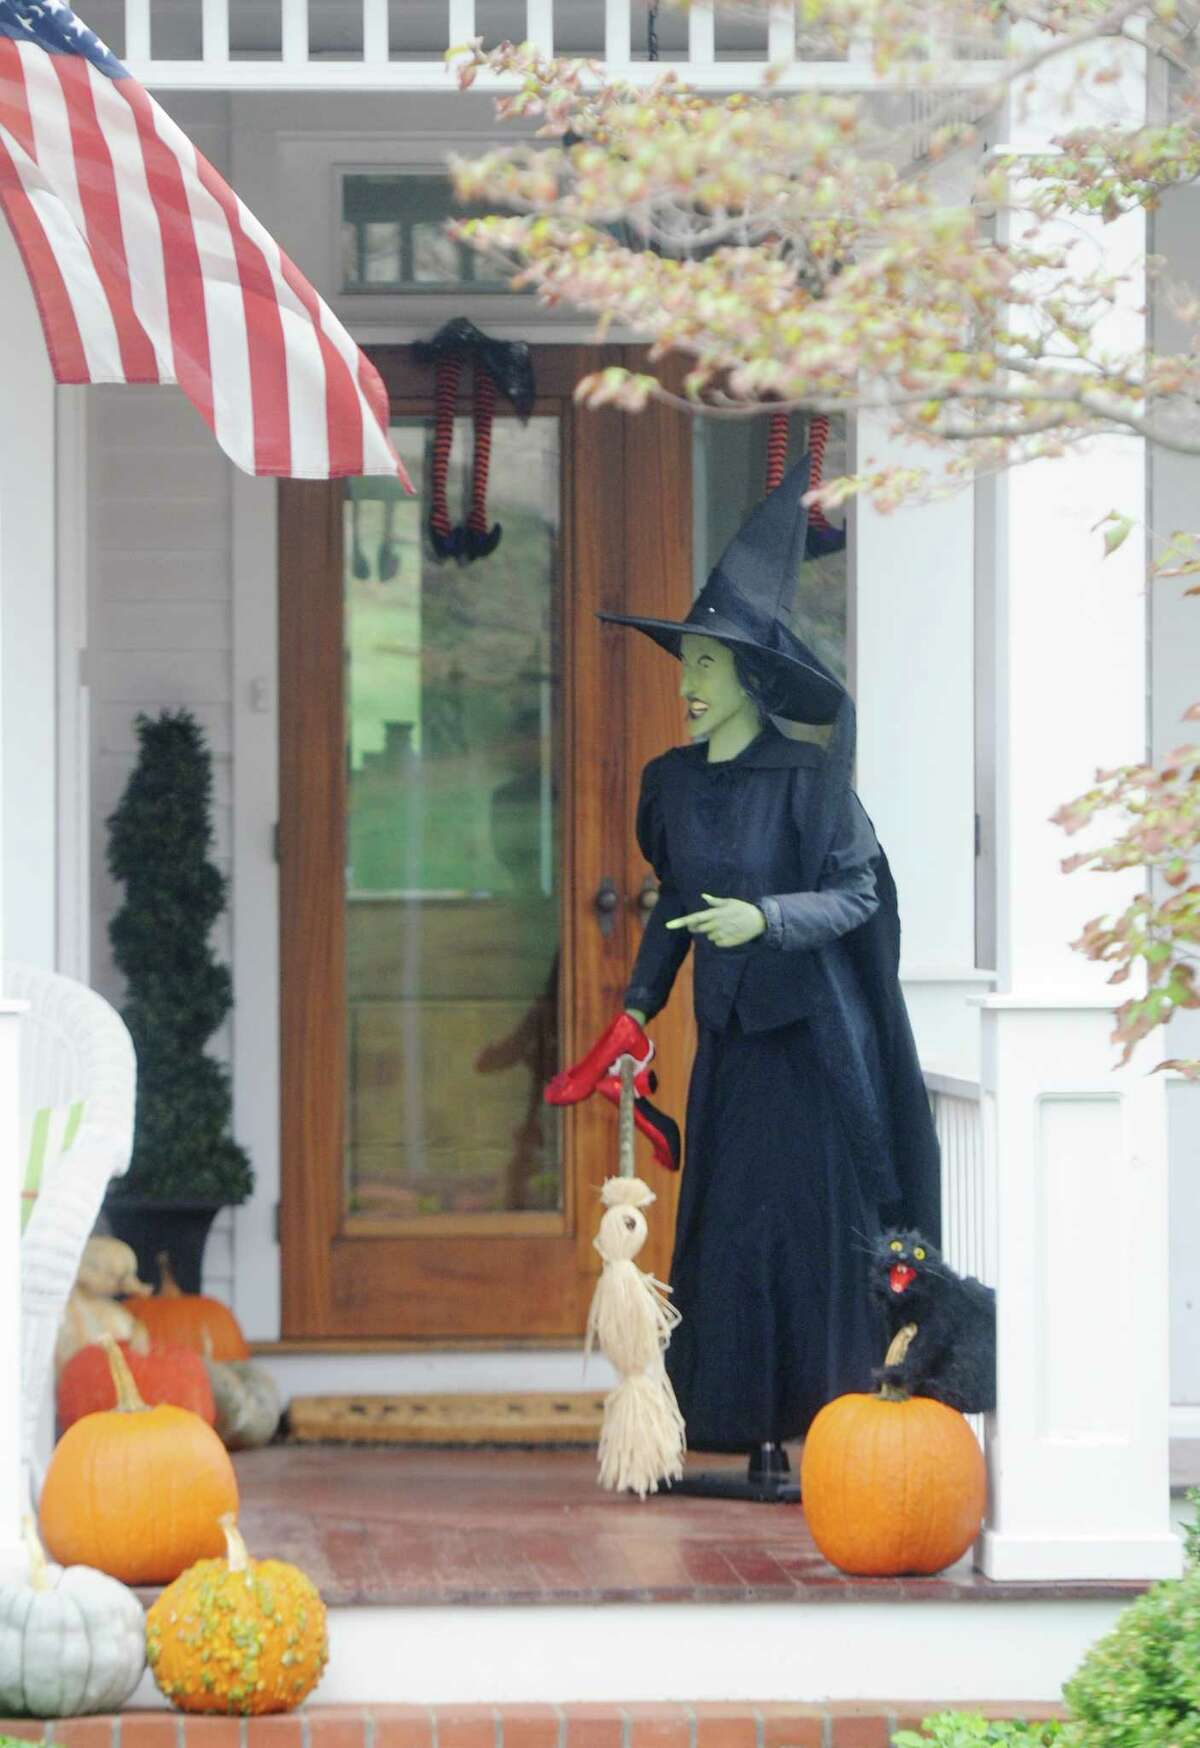 A witch greets those who dare to enter this home on Steamboat Road in Greenwich, Conn. Monday, Oct. 9, 2017.